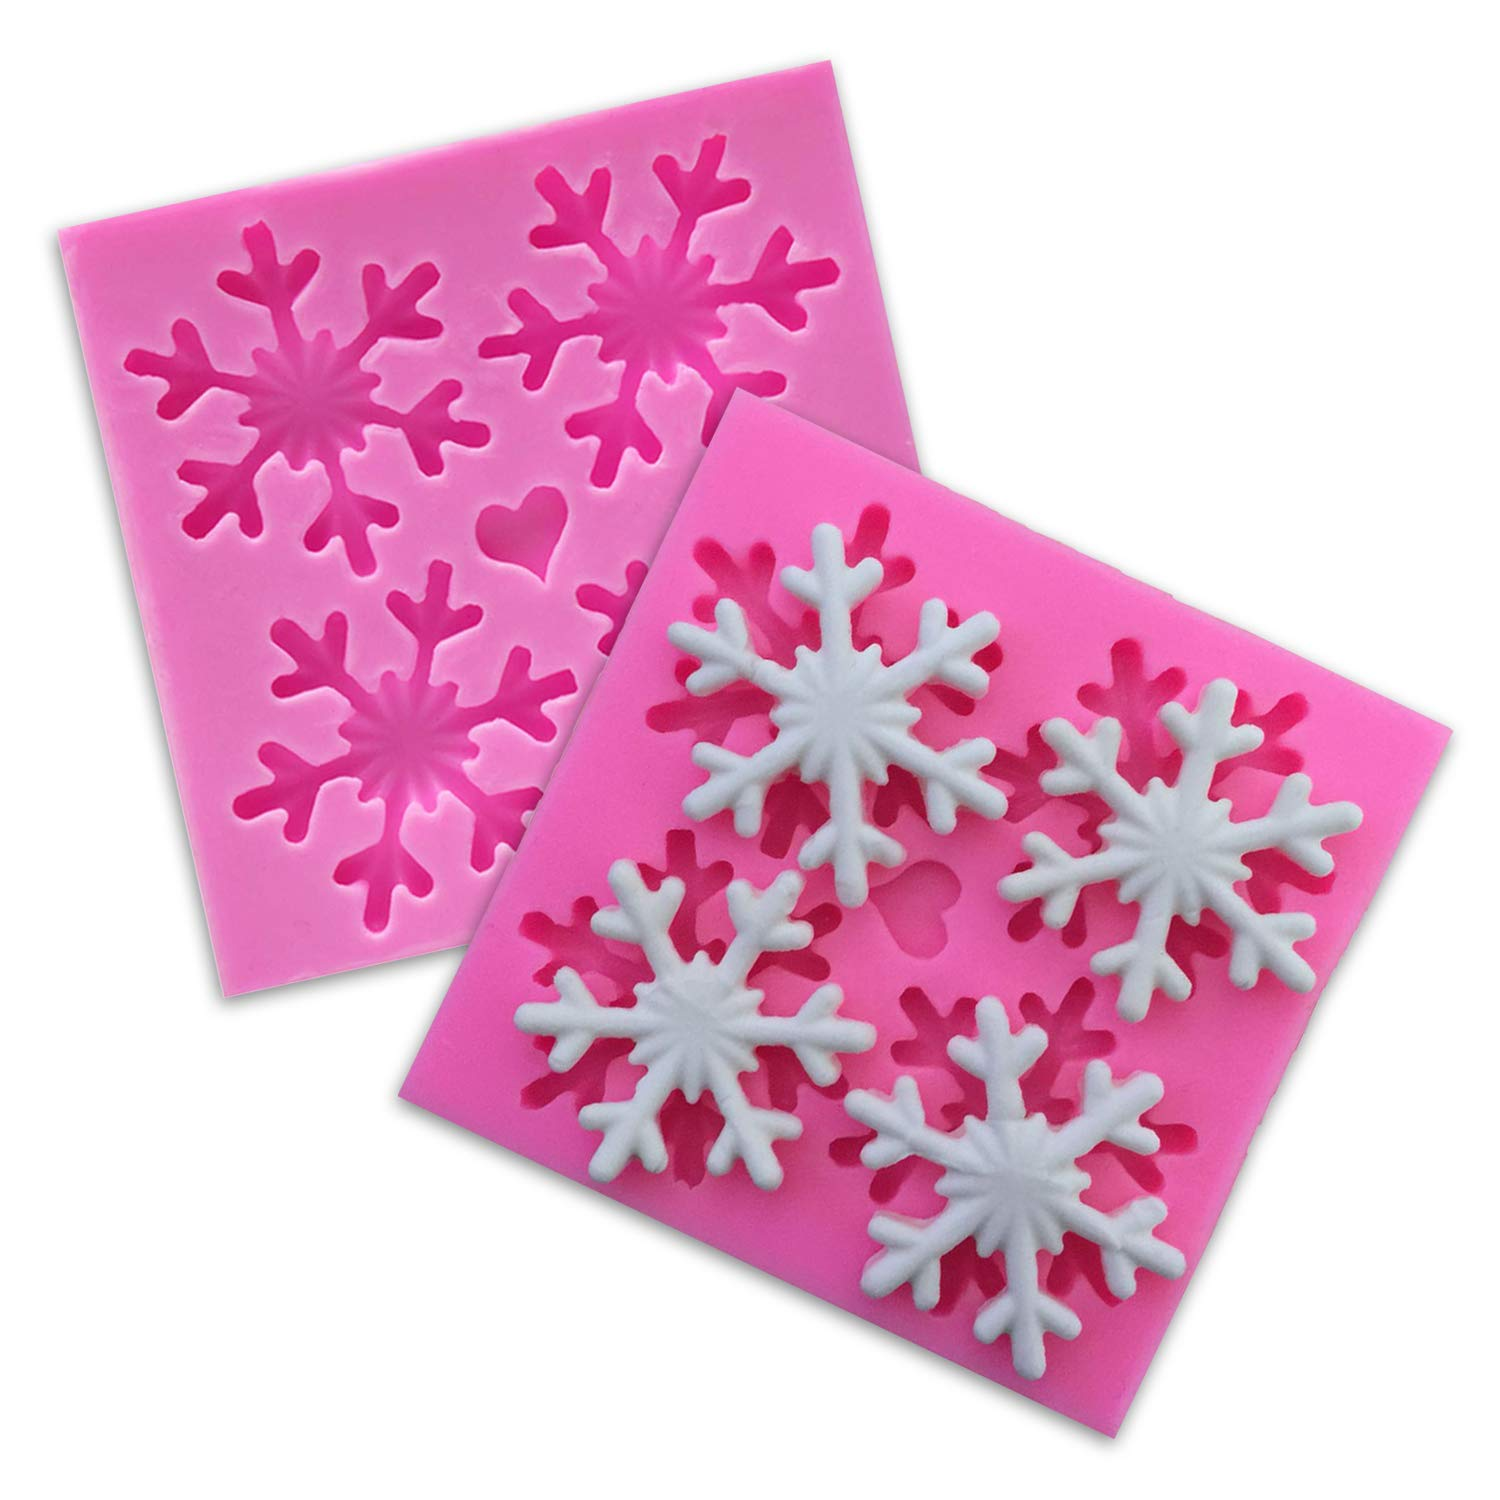 Snowflake Silicone Cake Mold - 2 Pack Christmas Silicone Cake Soap Handmade Mold 3D Fondant Mold BPA Free for Chocolate Candy Decoration, Cupcake & Cake Toppers, Party Decorations (Style A) Witkey